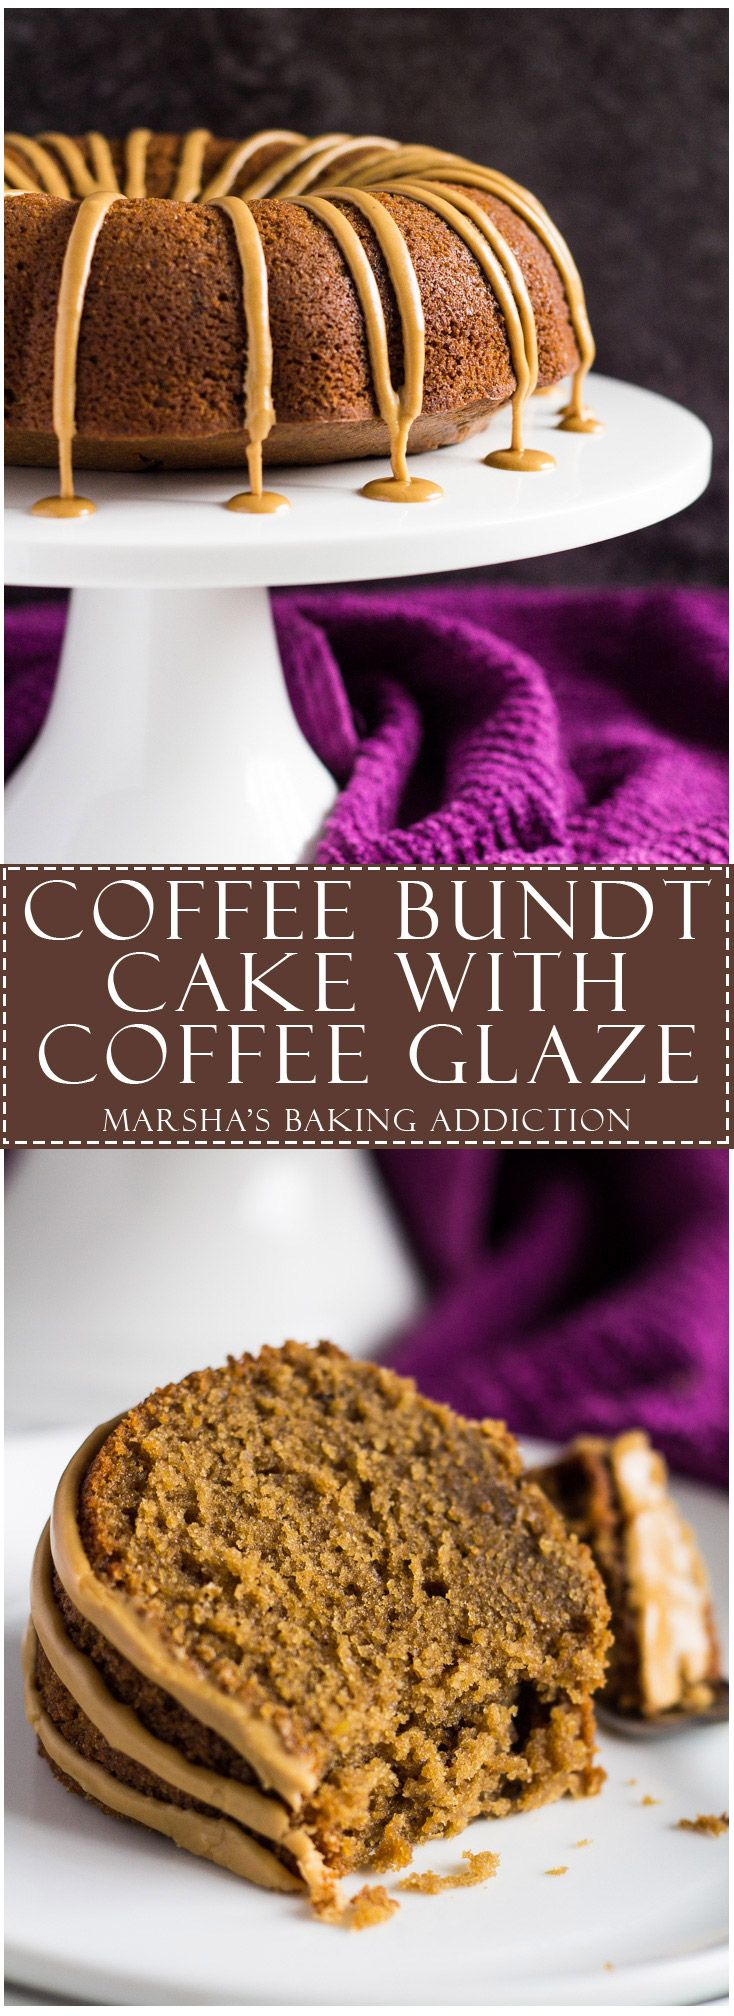 Coffee Bundt Cake | marshasbakingaddiction.com @marshasbakeblog